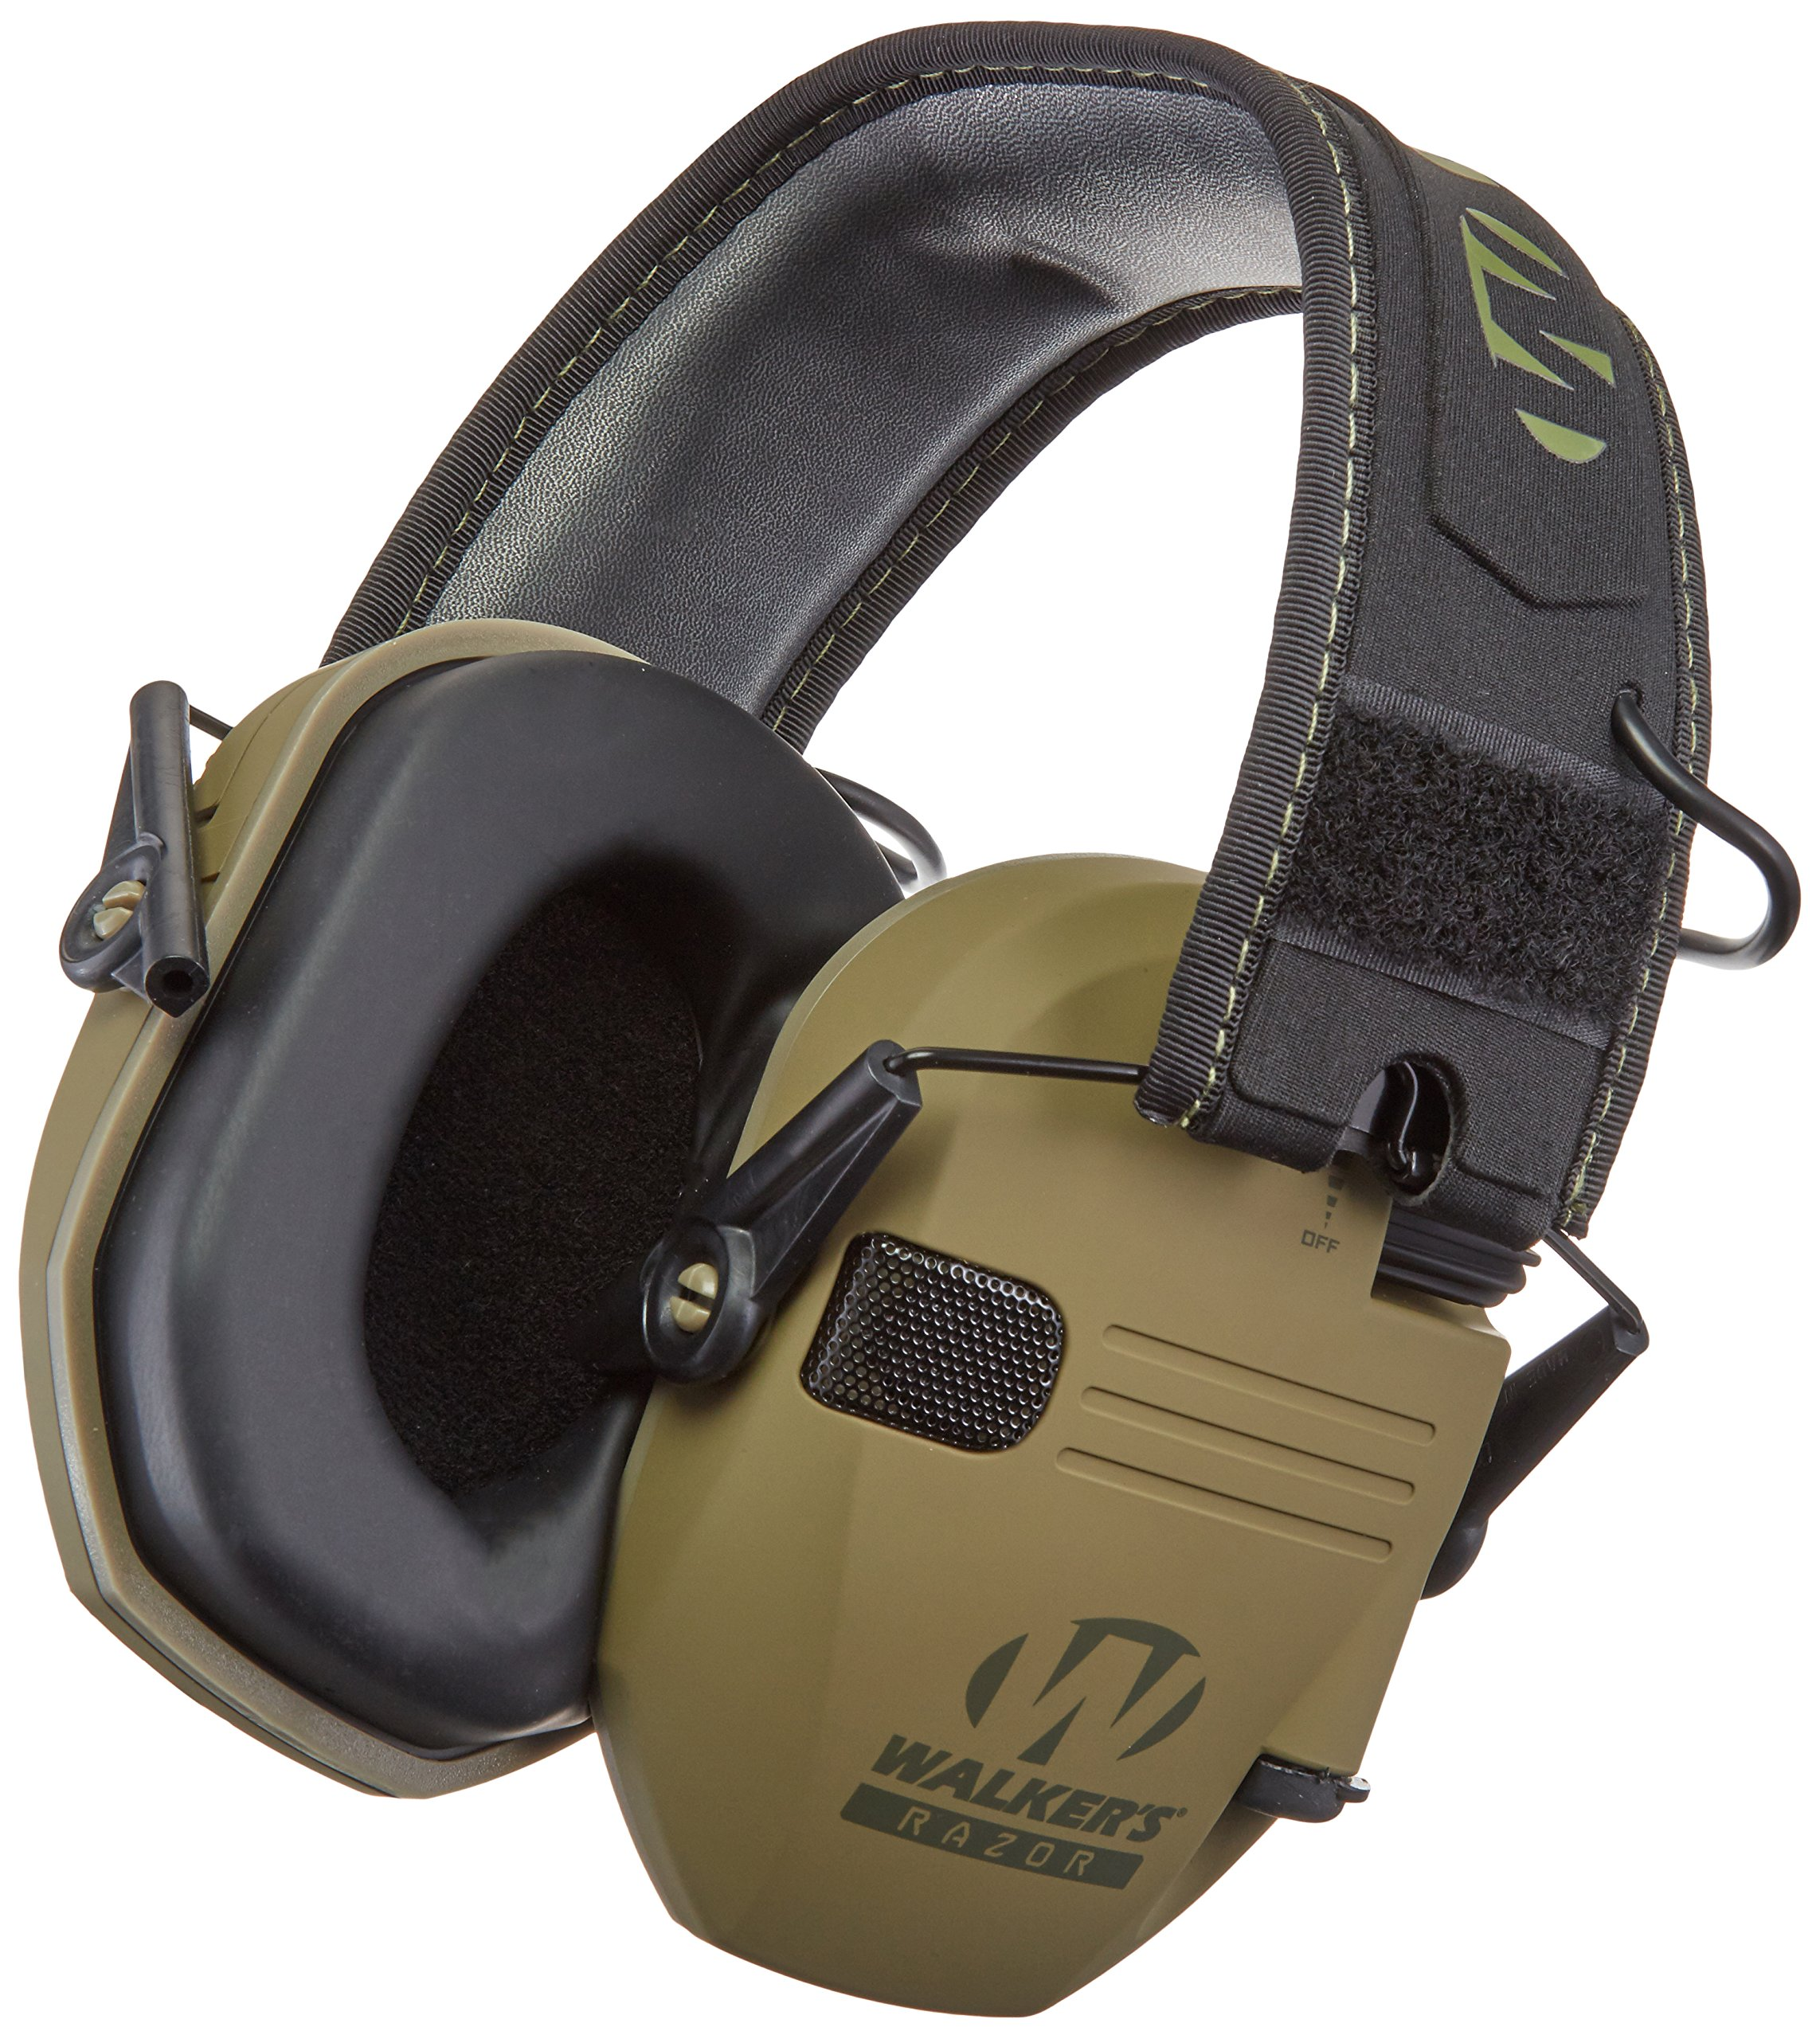 Walker's GWP-RSEMPAT-FDE GWP-RSEMPAT-FDE Hunting Earmuffs by Walker's Game Ear